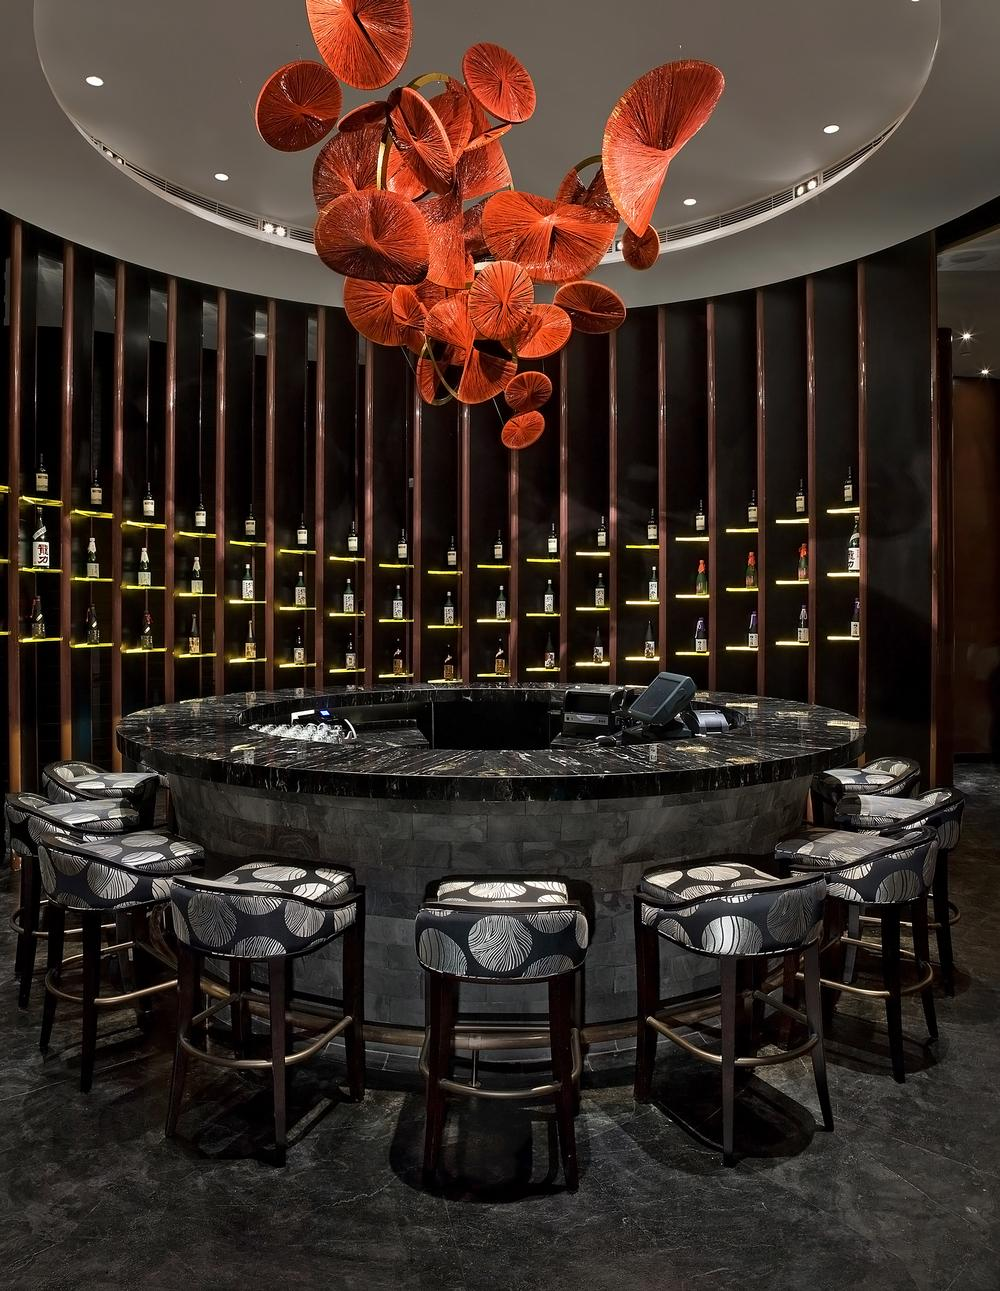 The W Guangzhou in China was inspired by classical Japanese dance-theatre